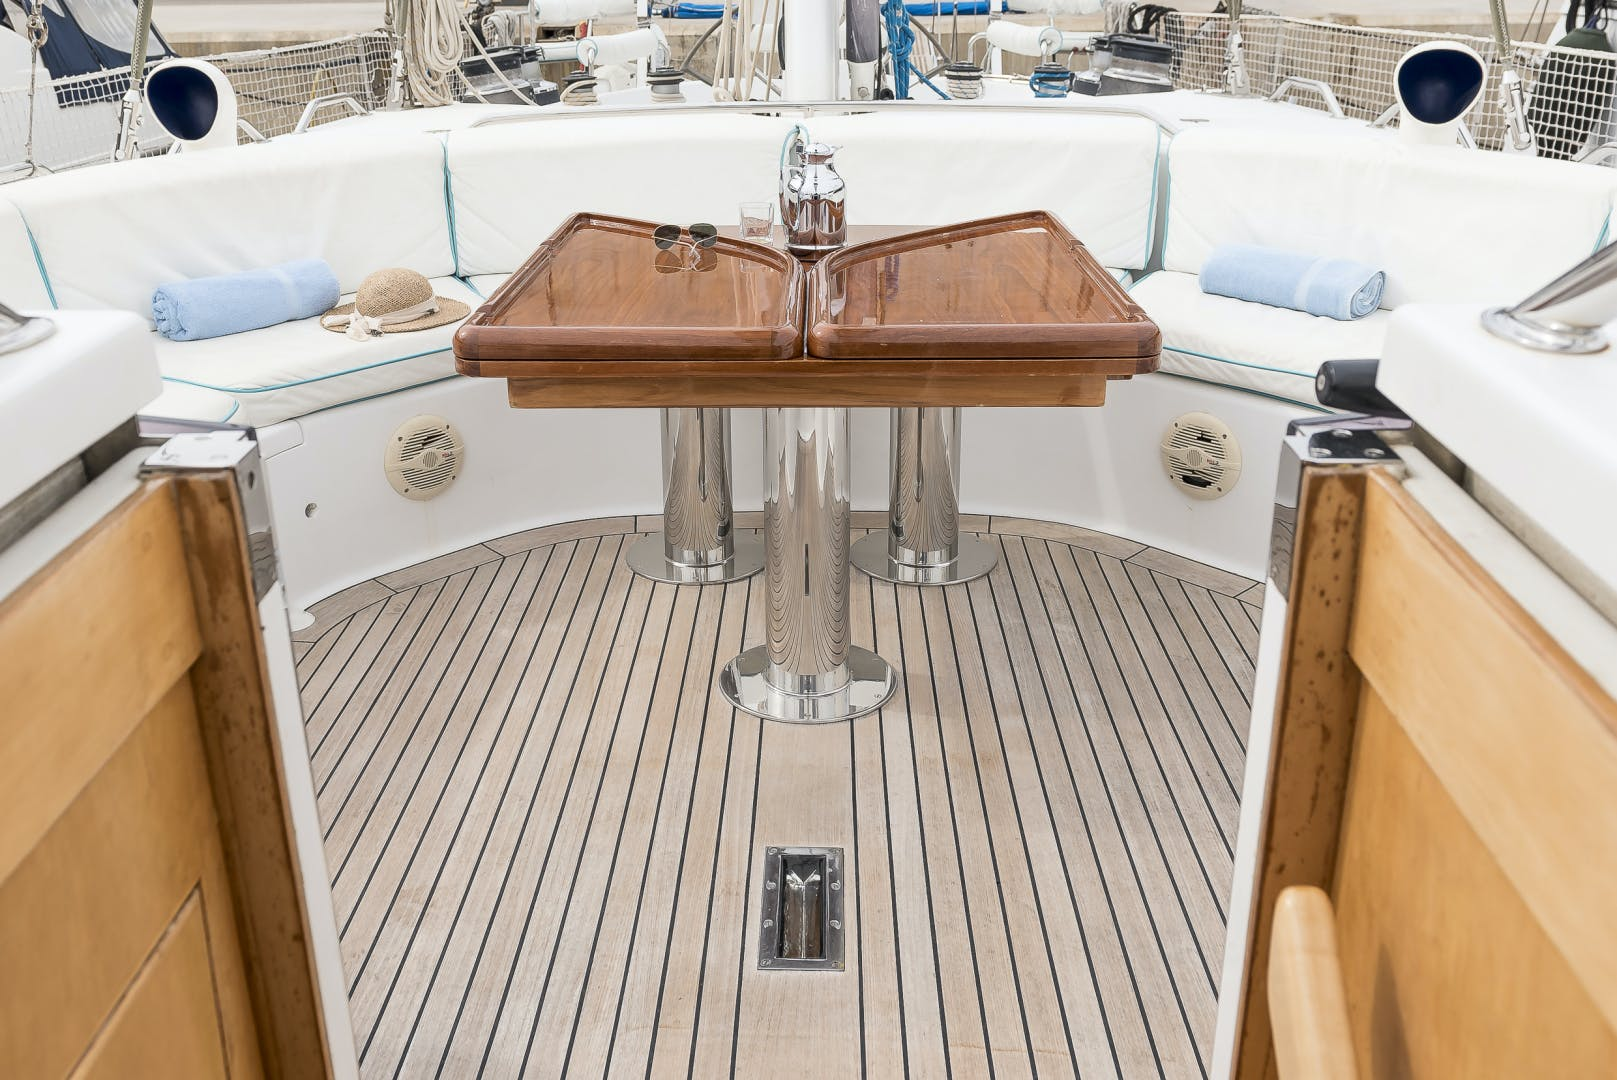 1992 Other 84' Southampton Yacht Services - Tony Castro Rocio | Picture 6 of 19